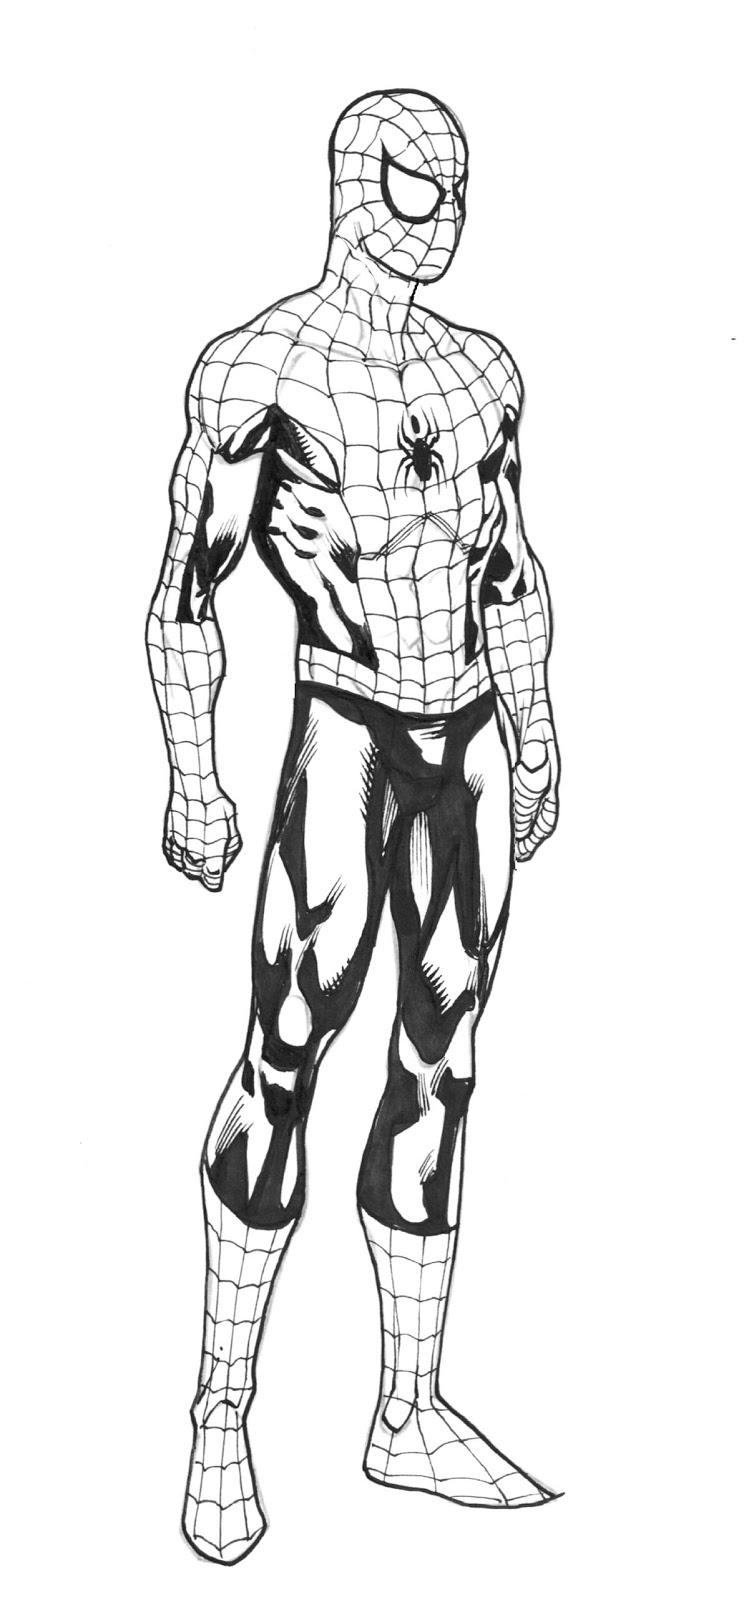 Robert atkins art december 2012 for Disegni da colorare spiderman 3